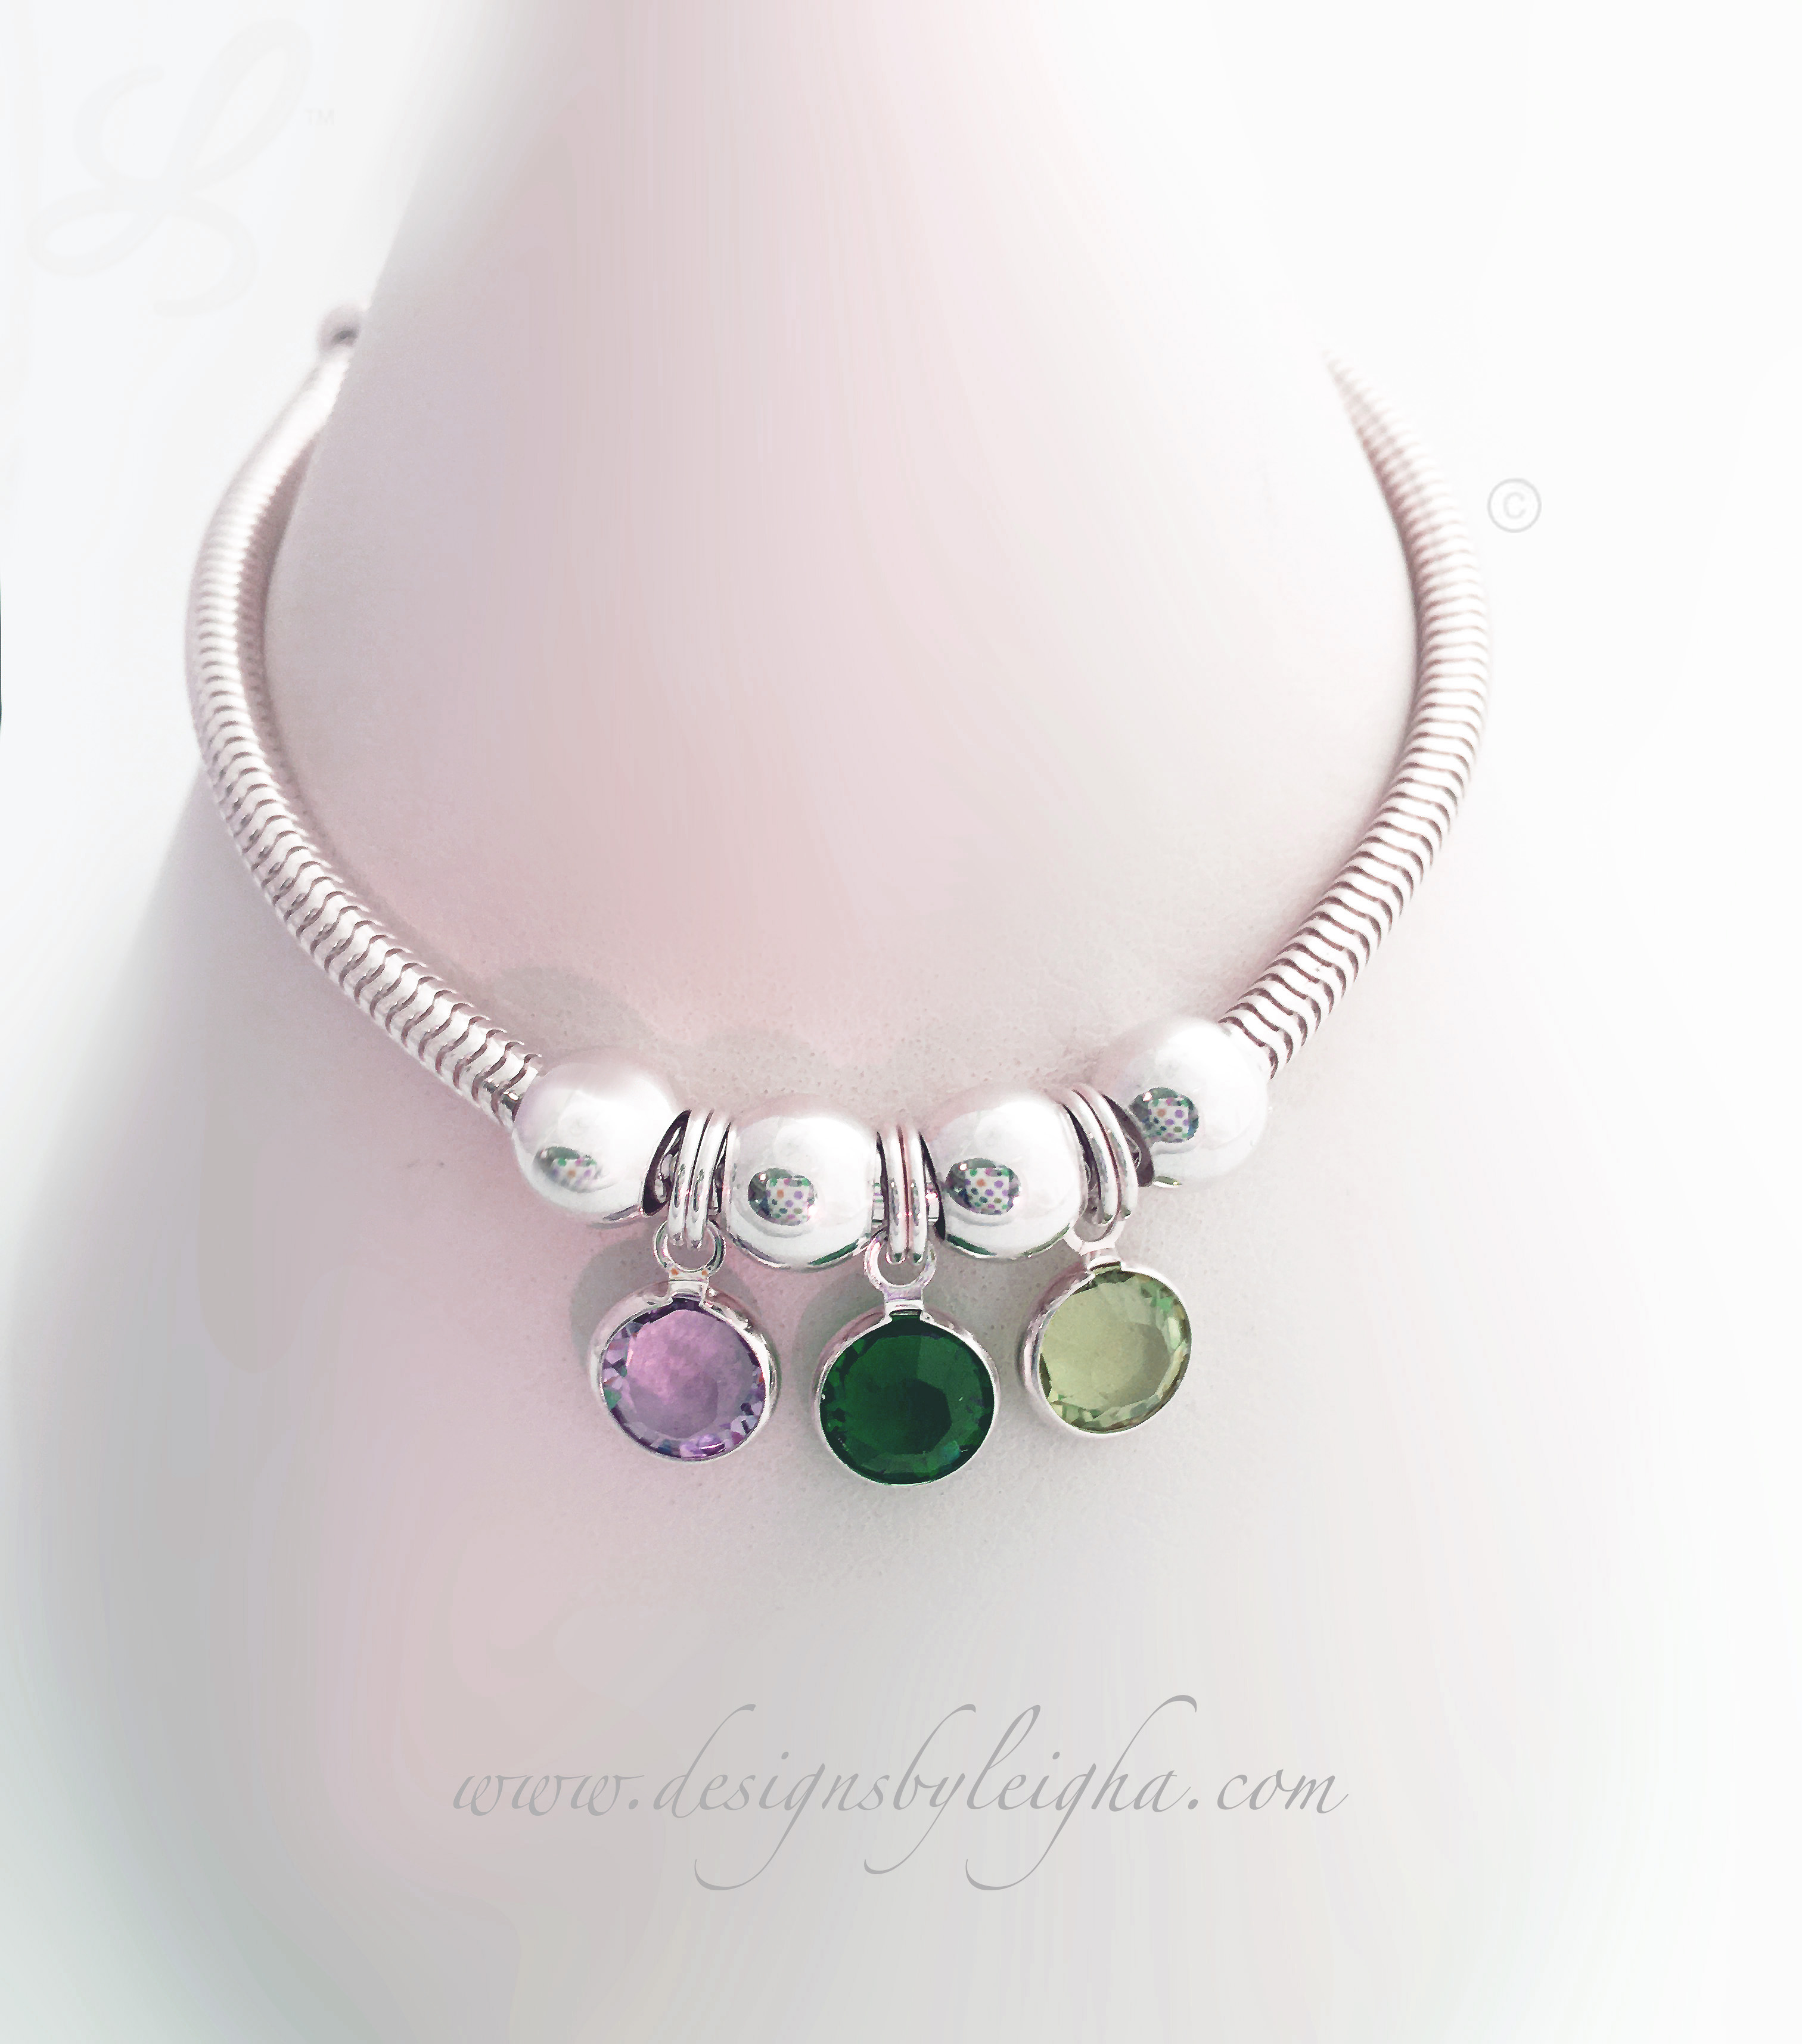 This Birthstone Charm Bracelet is shown with 3 Swarovski Birthstone Charms: June or Light Amethyst, May or Emerald and August or Peridot.